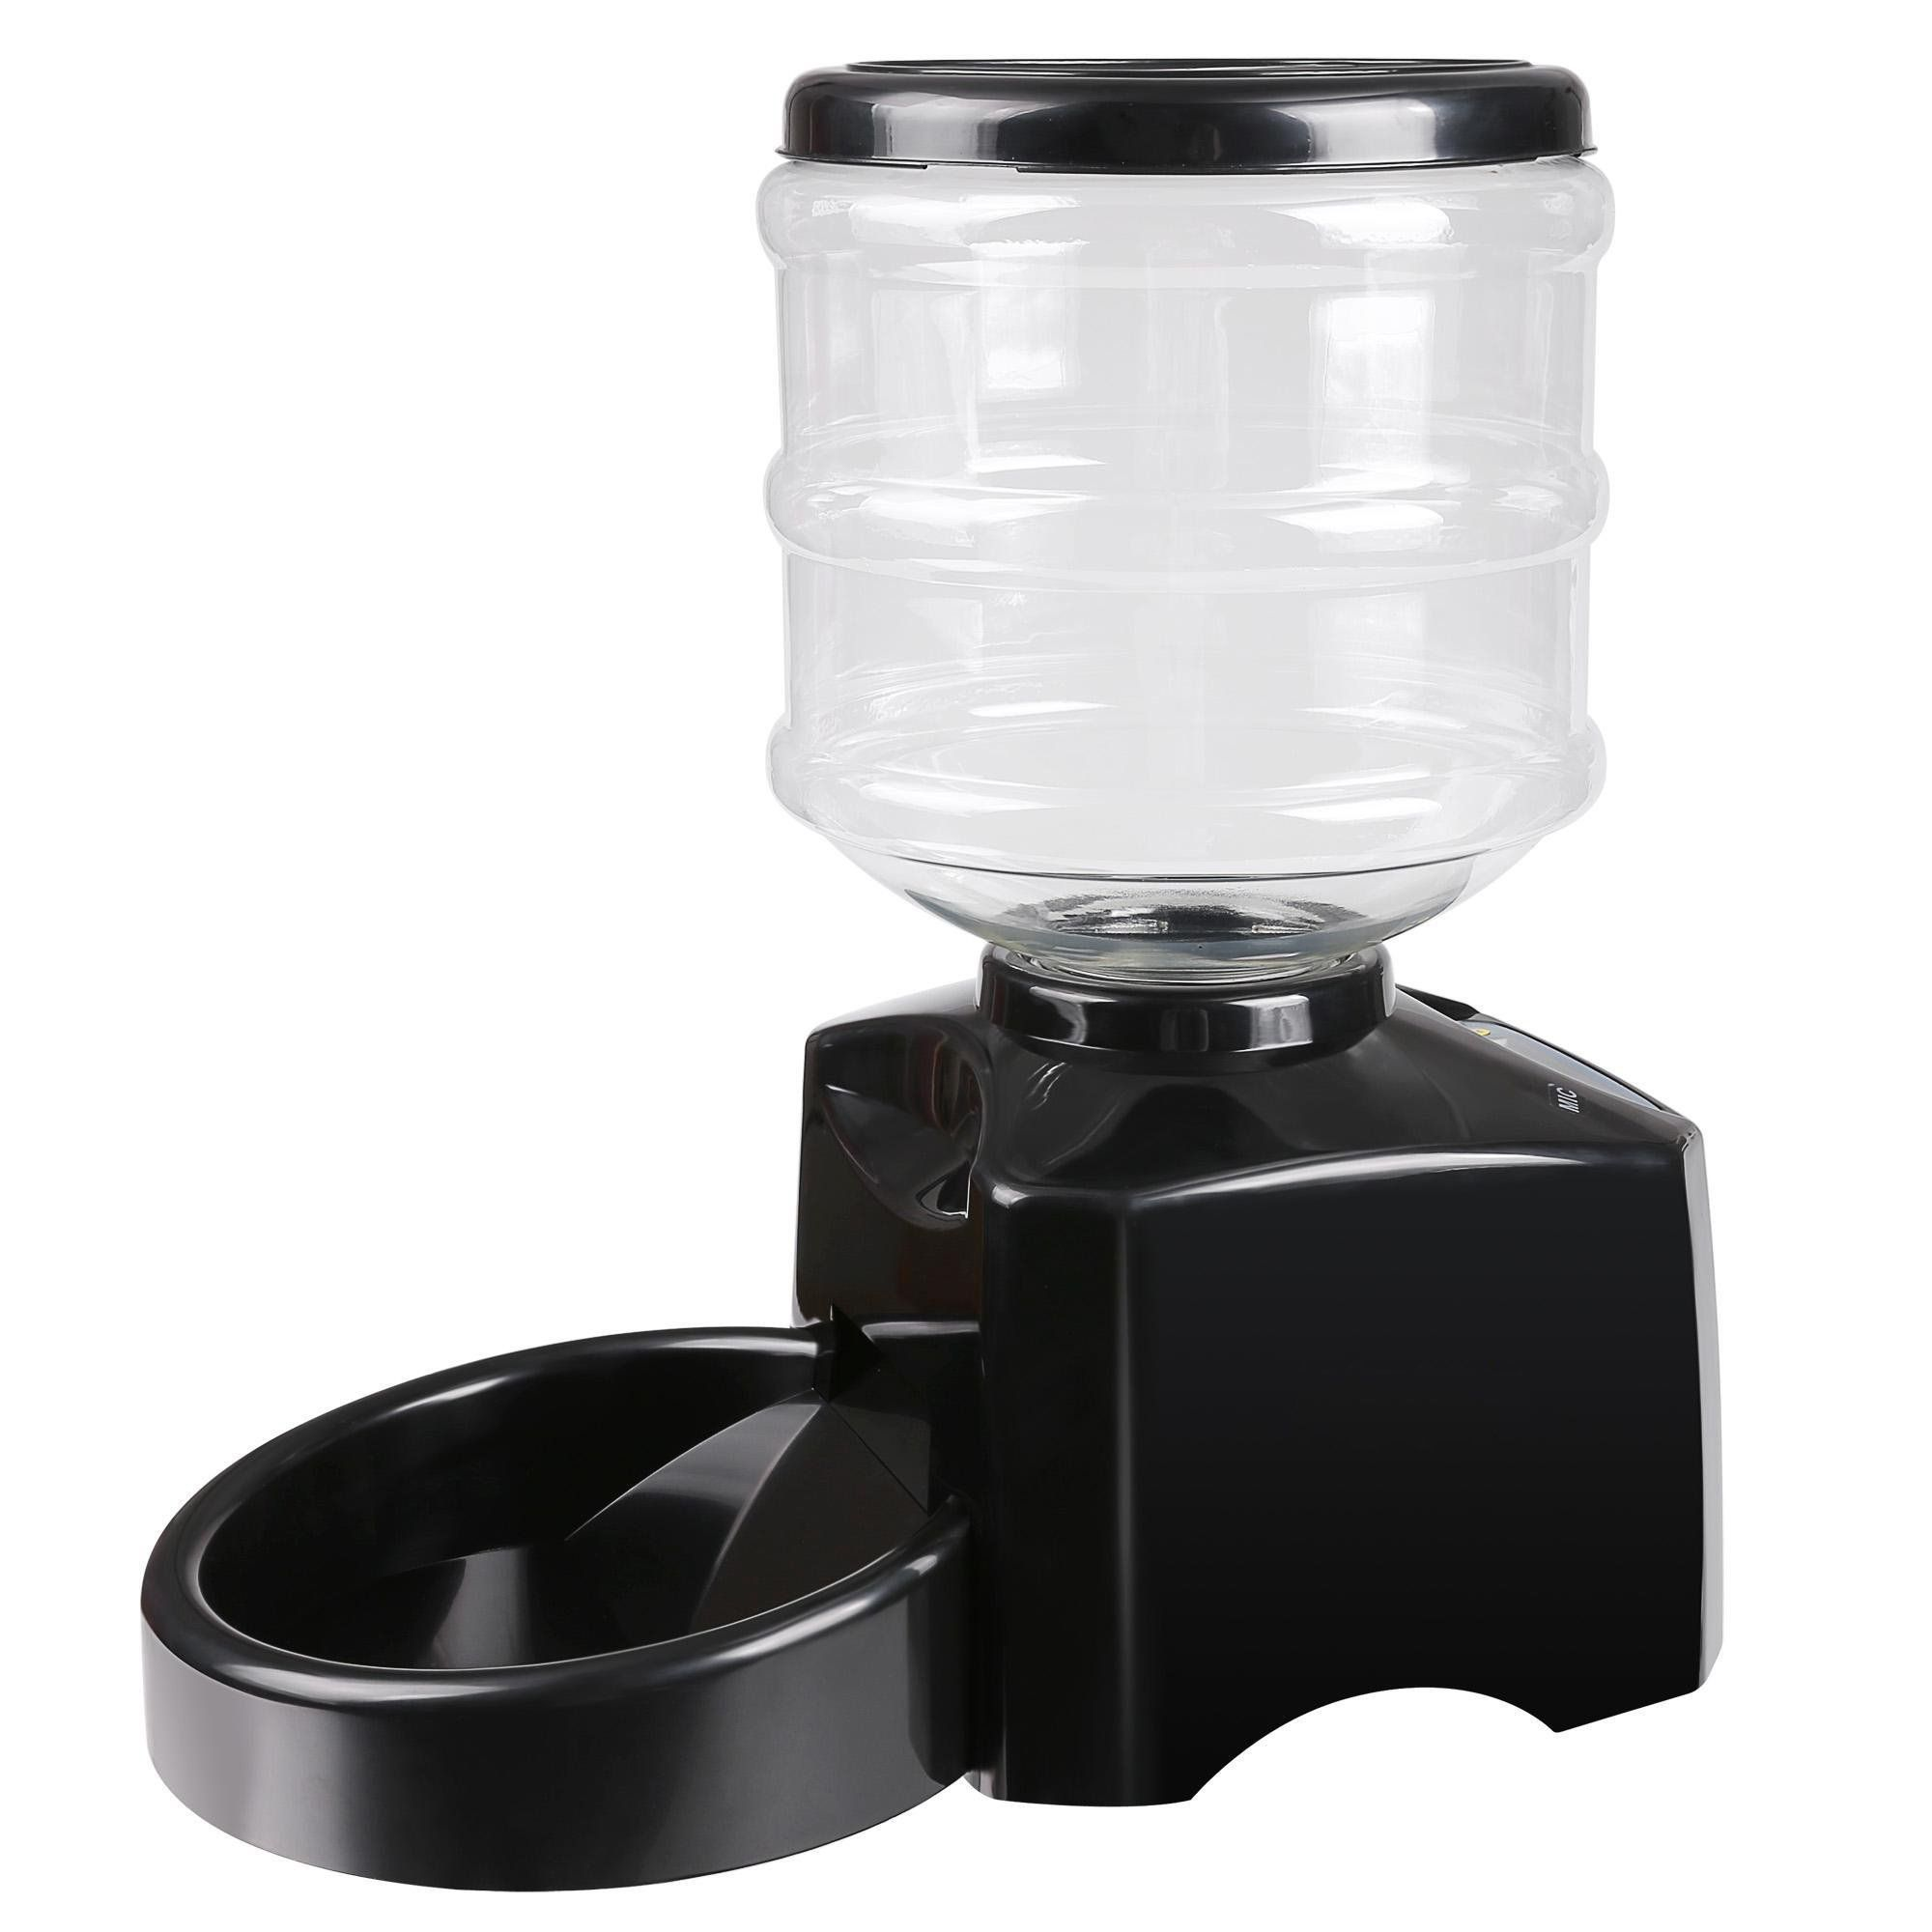 55 liter large automatic auto timed portion control pet